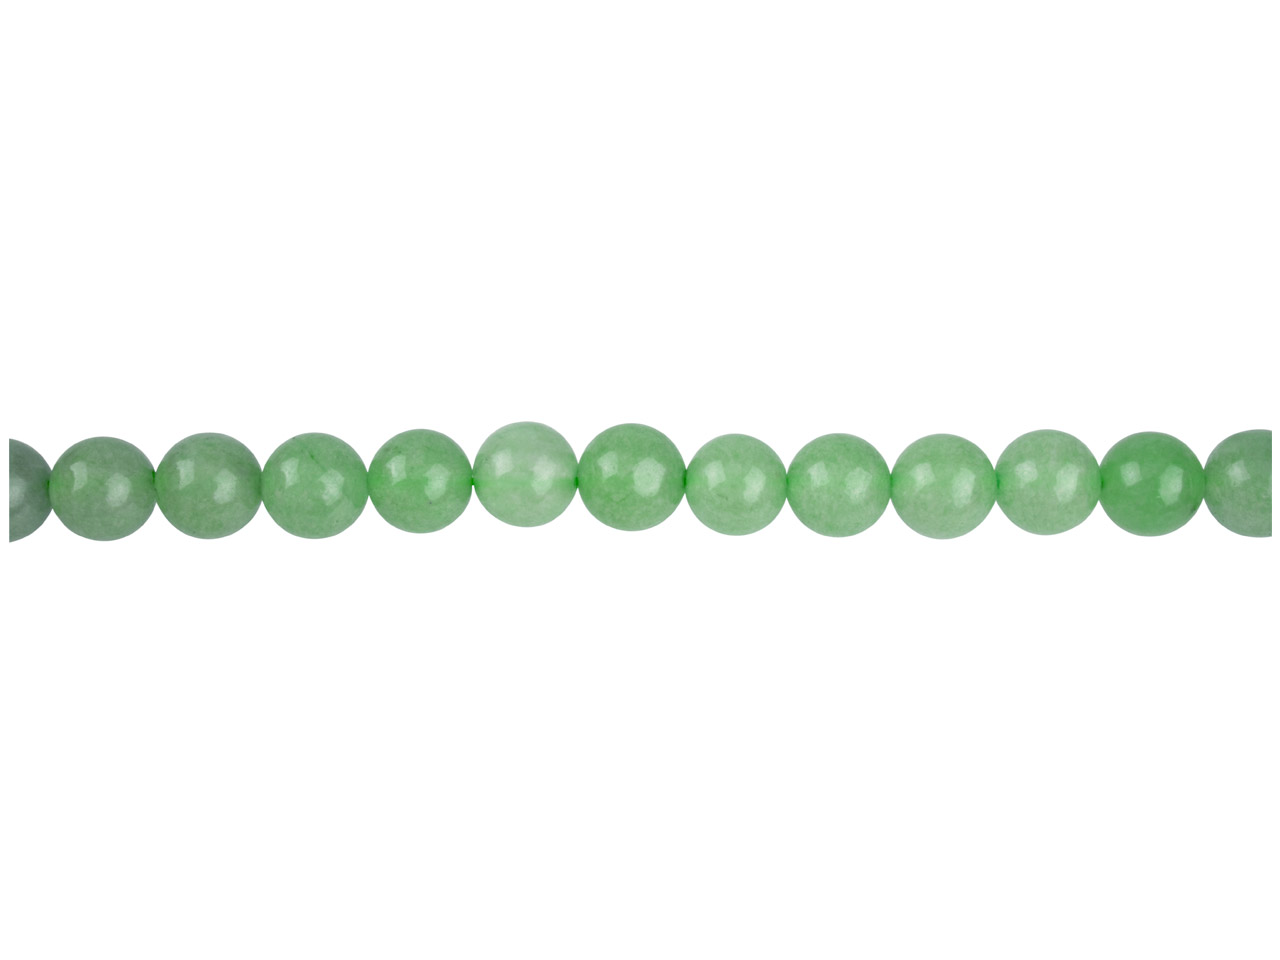 Green Aventurine Semi Precious     Round Beads 8mm, 16